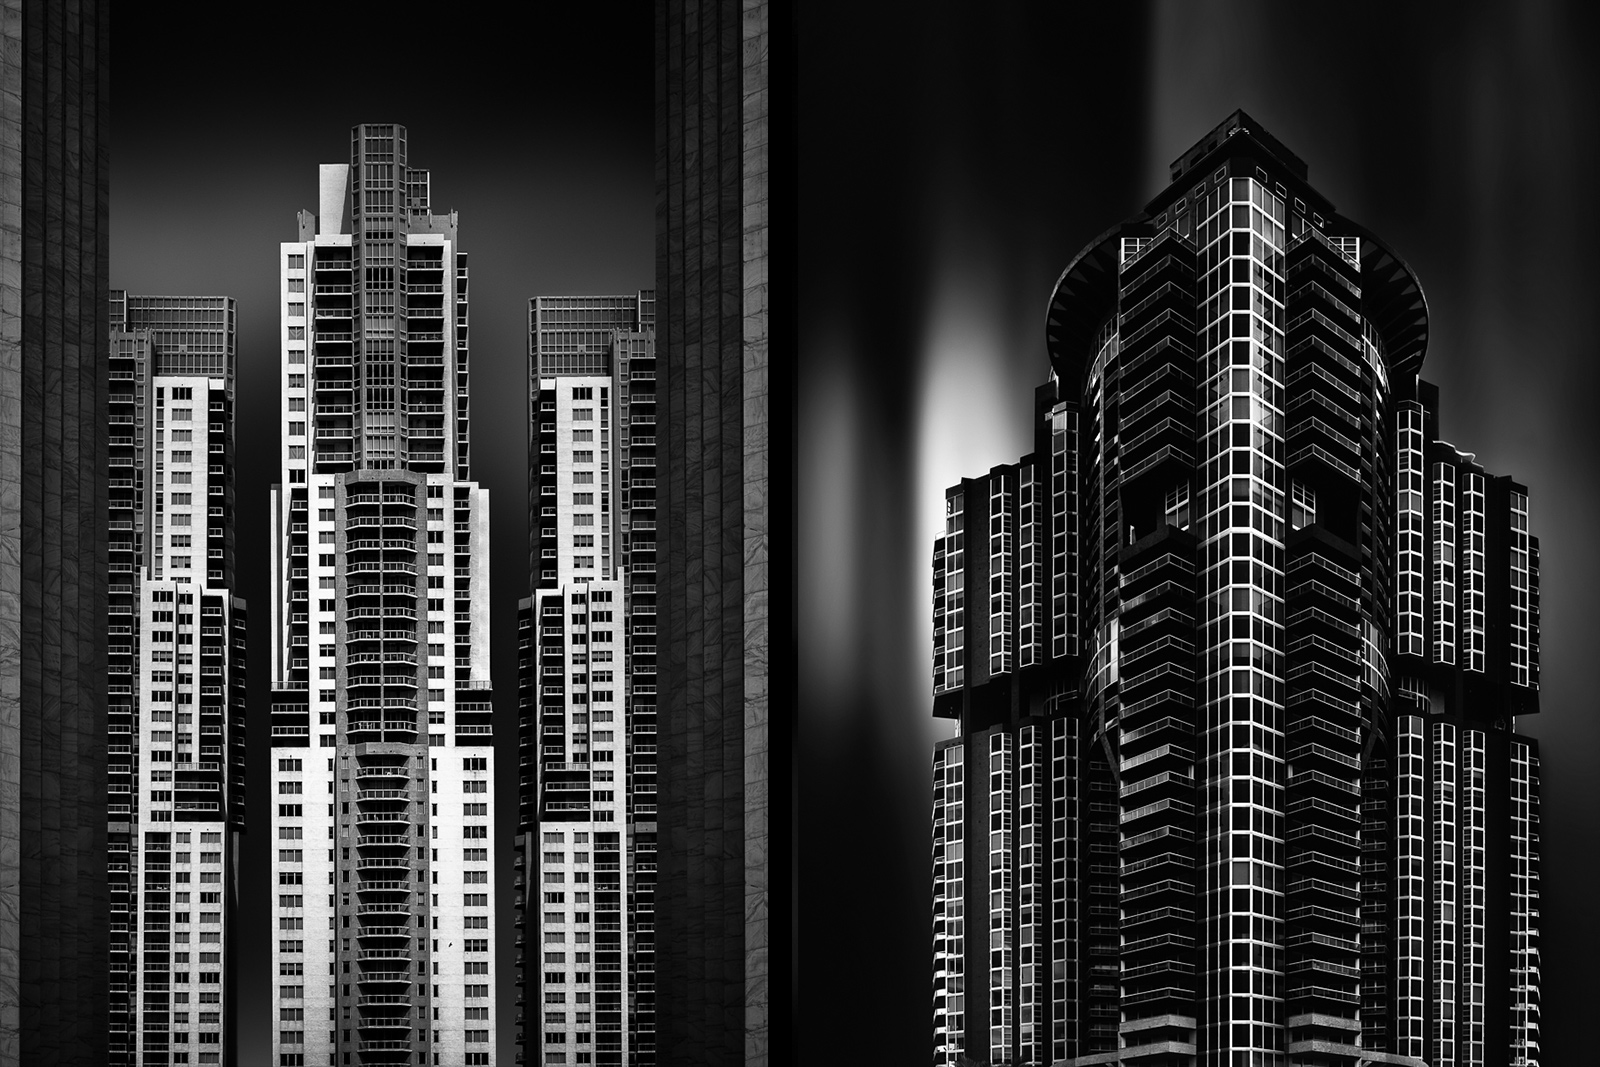 antonyz long exposure architecture modern residential buildings black and white